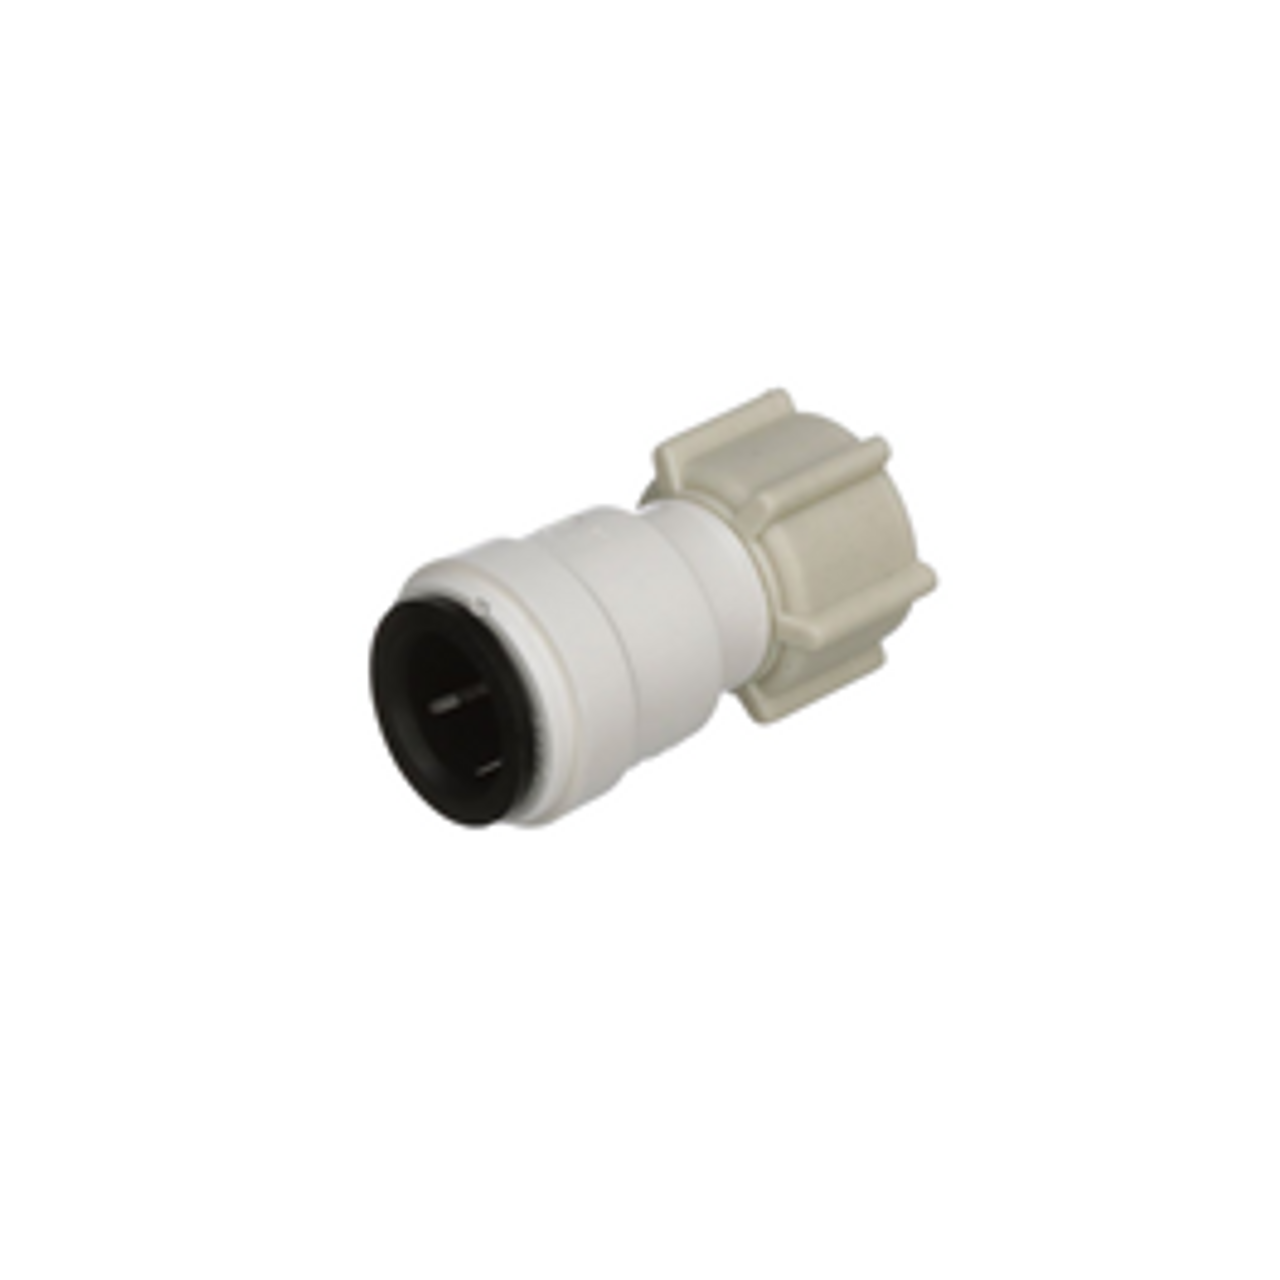 """½"""" CTS x ½"""" NPS Adapter 3510-1008"""